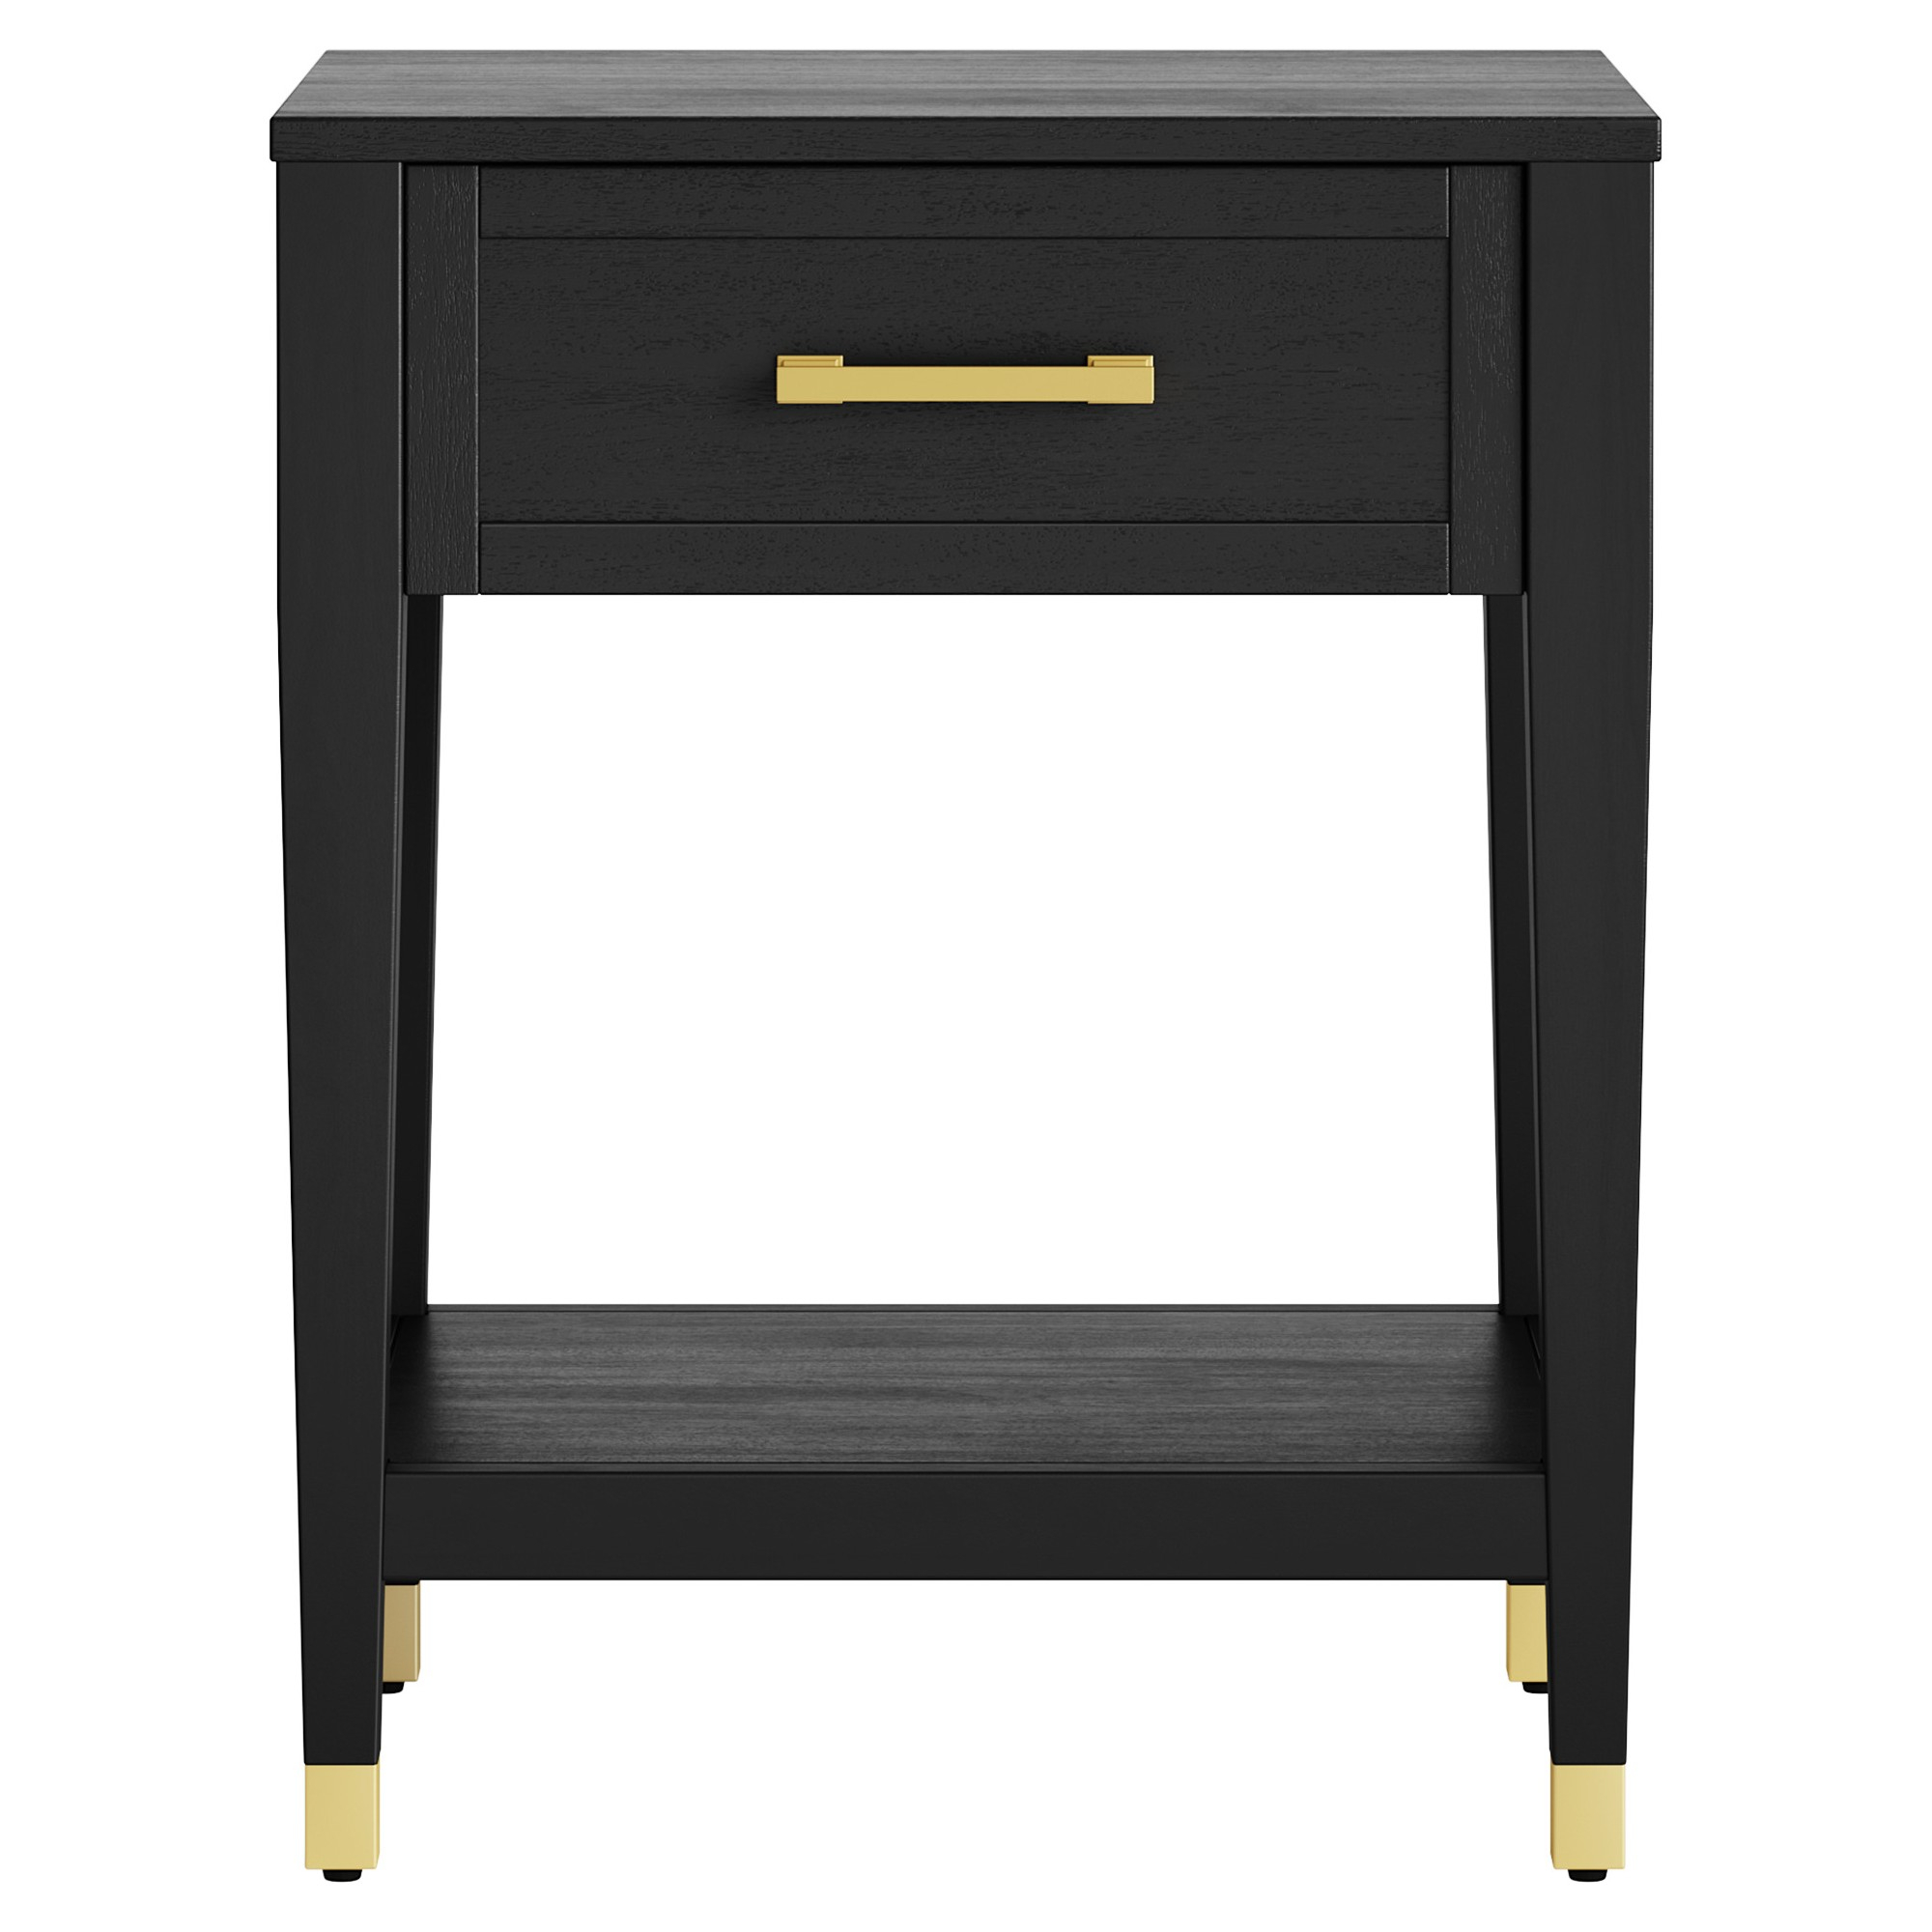 Aged Iron Cube Tables Inside Favorite Duxbury Black End Table With Gold Feet – Threshold In  (View 2 of 20)